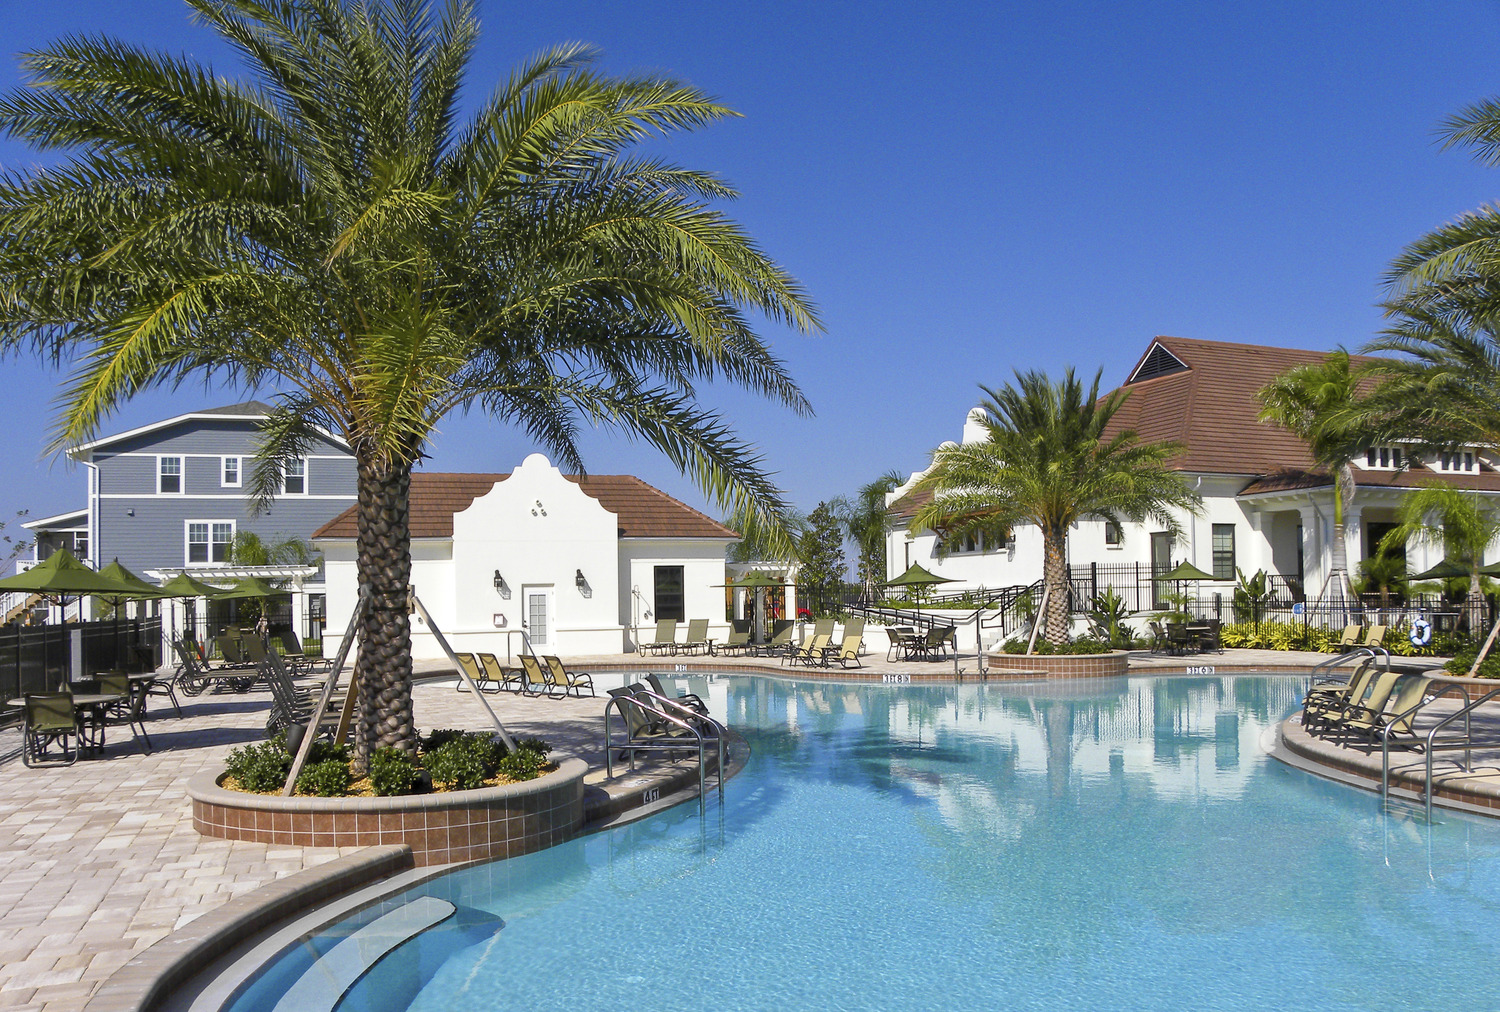 CBG builds MacDill Family Housing, a 527 Homes for Military Families in the Air Force at Harbor Bay at MacDill in Tampa, FL - Image #5